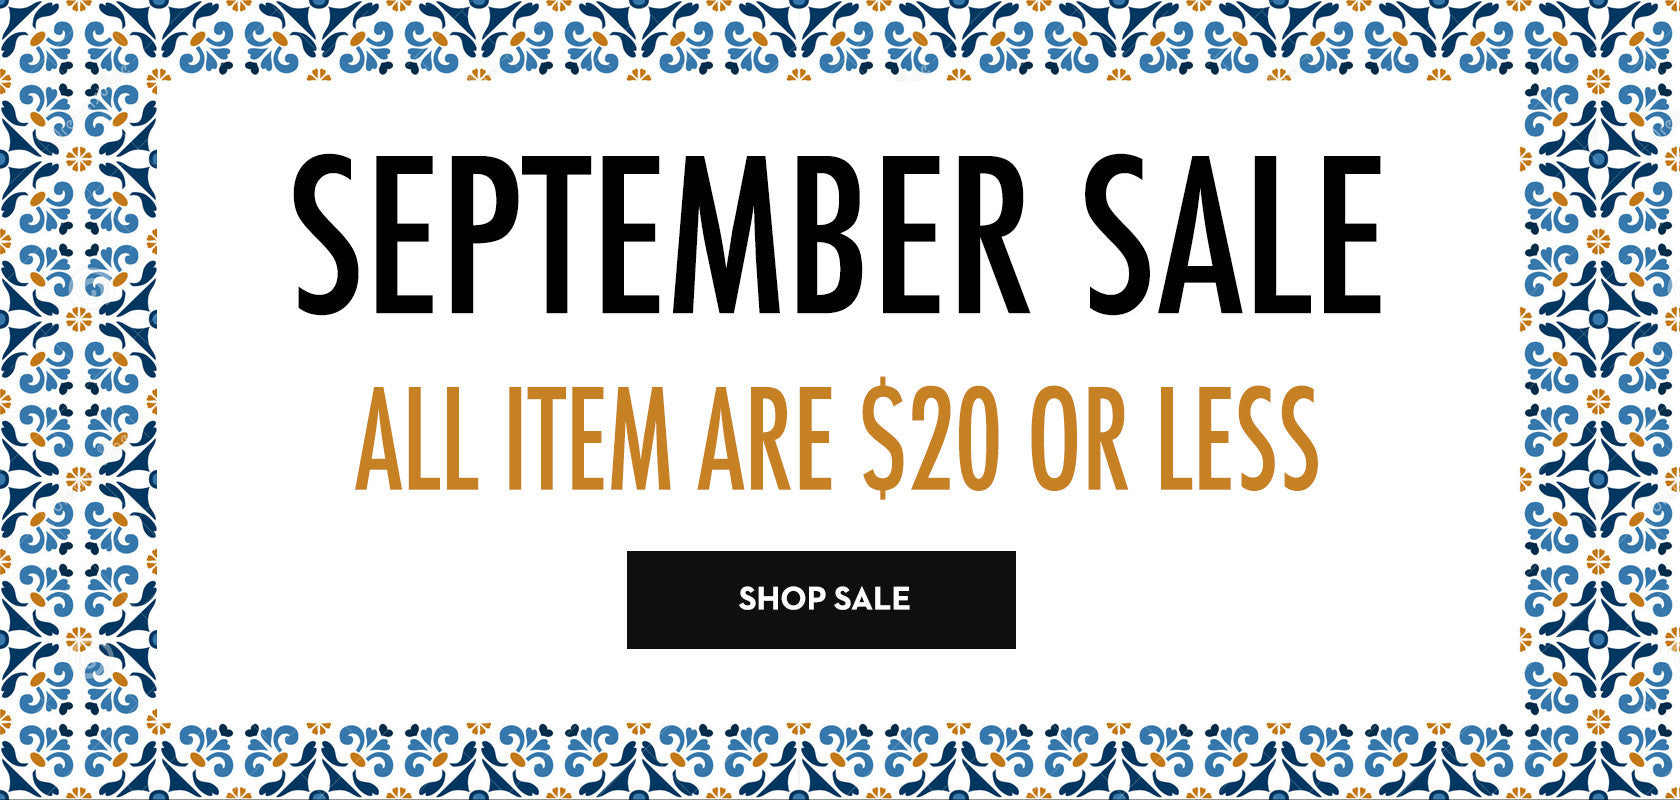 End of Summer Sale - EXTRA 40% off